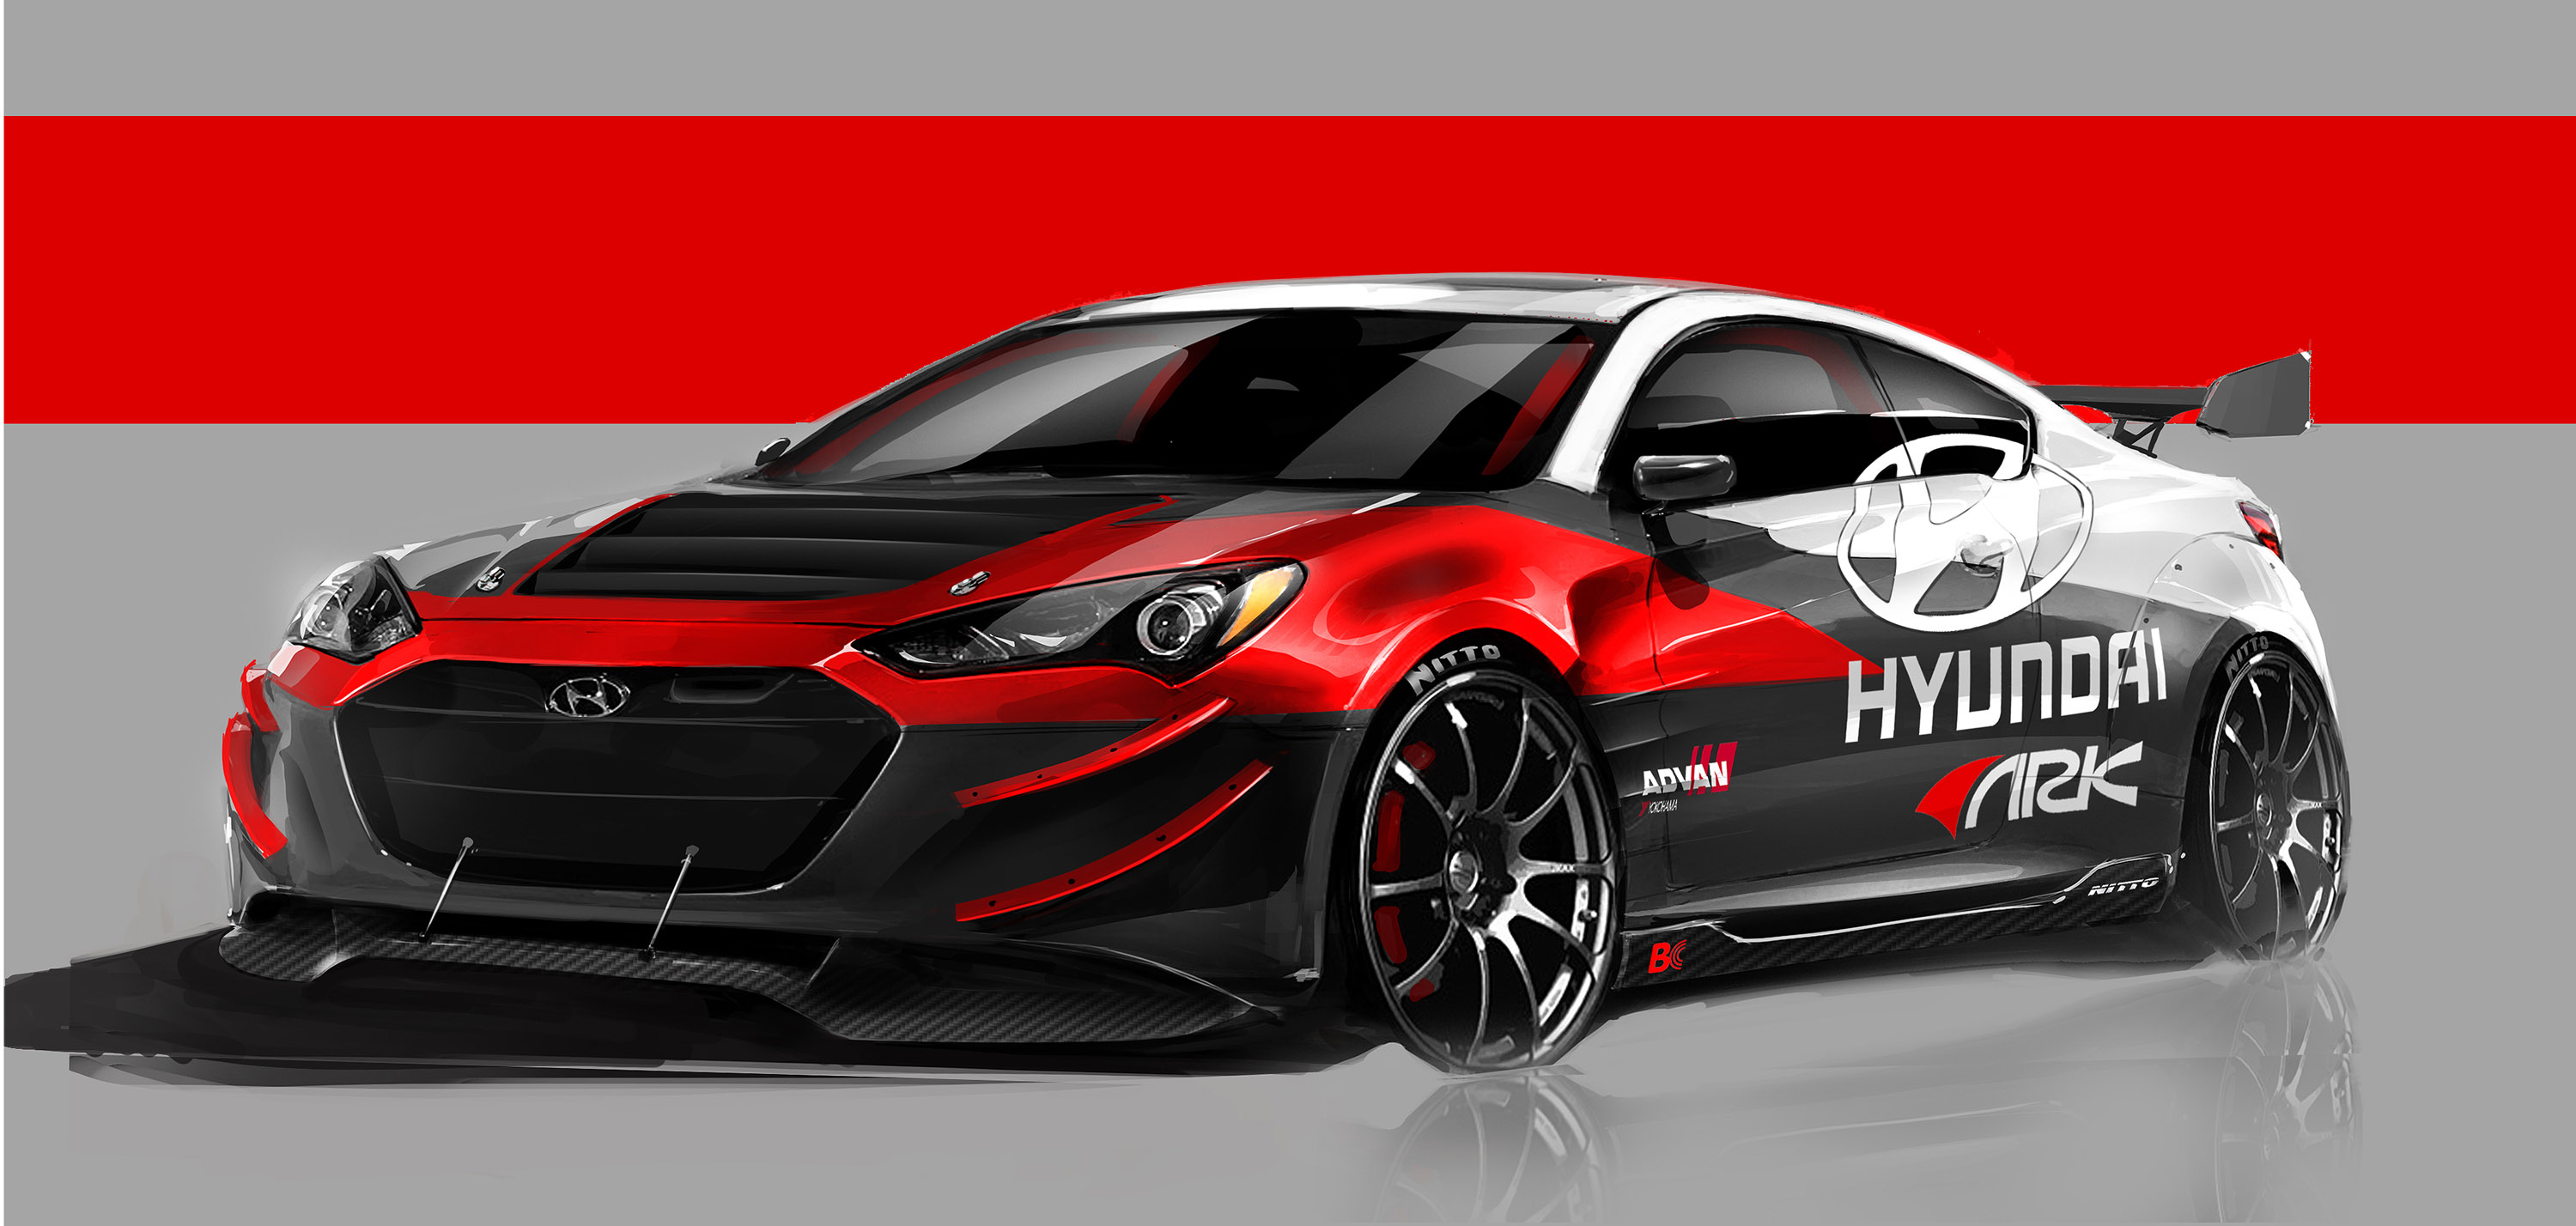 2012 ark hyundai genesis coupe r spec tuning race racing. Black Bedroom Furniture Sets. Home Design Ideas